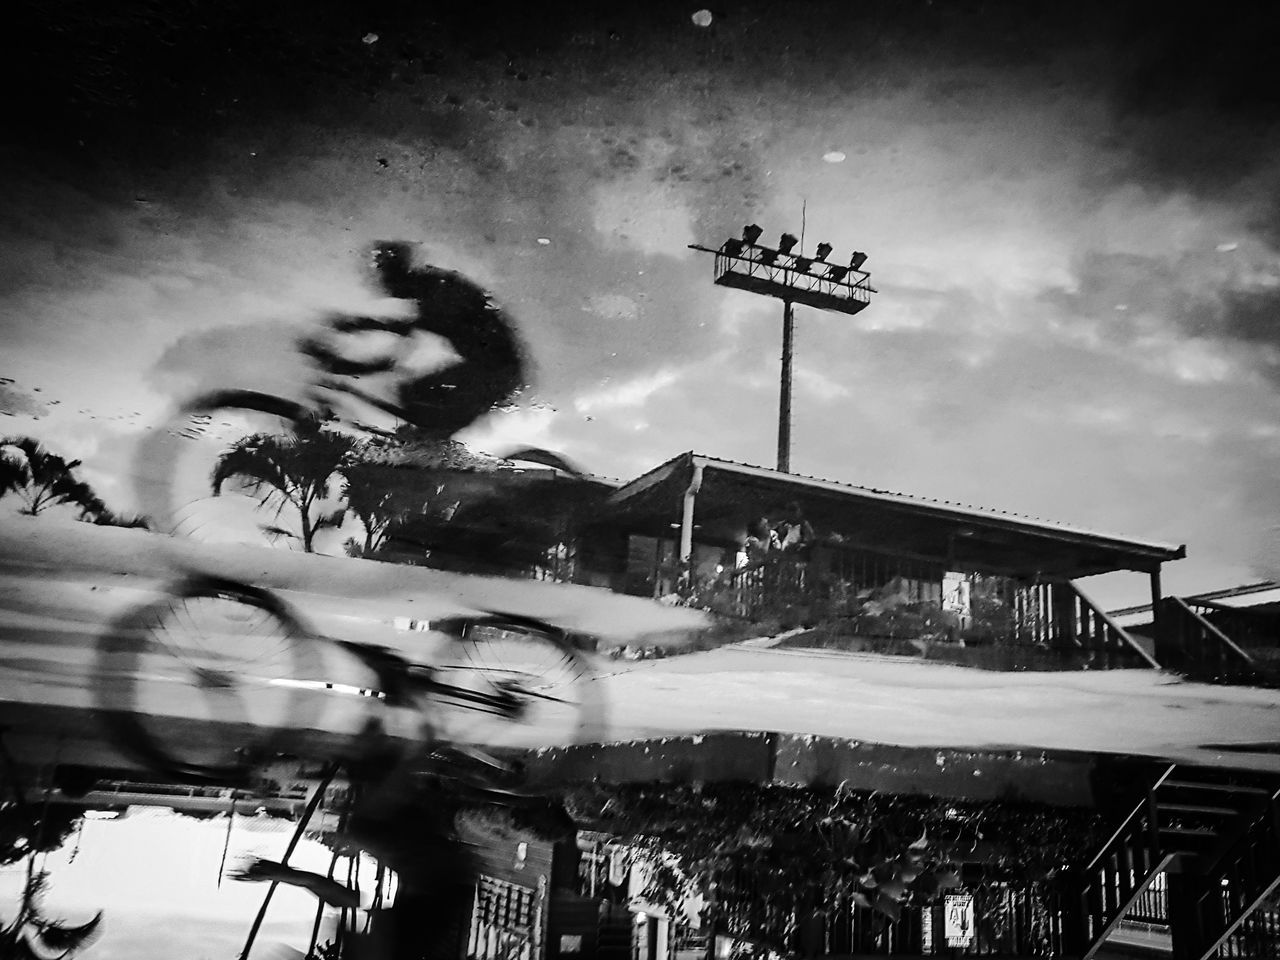 Capturing Motion Streetphotography Street Photography Blackandwhite SUVA FIJI ISLANDS